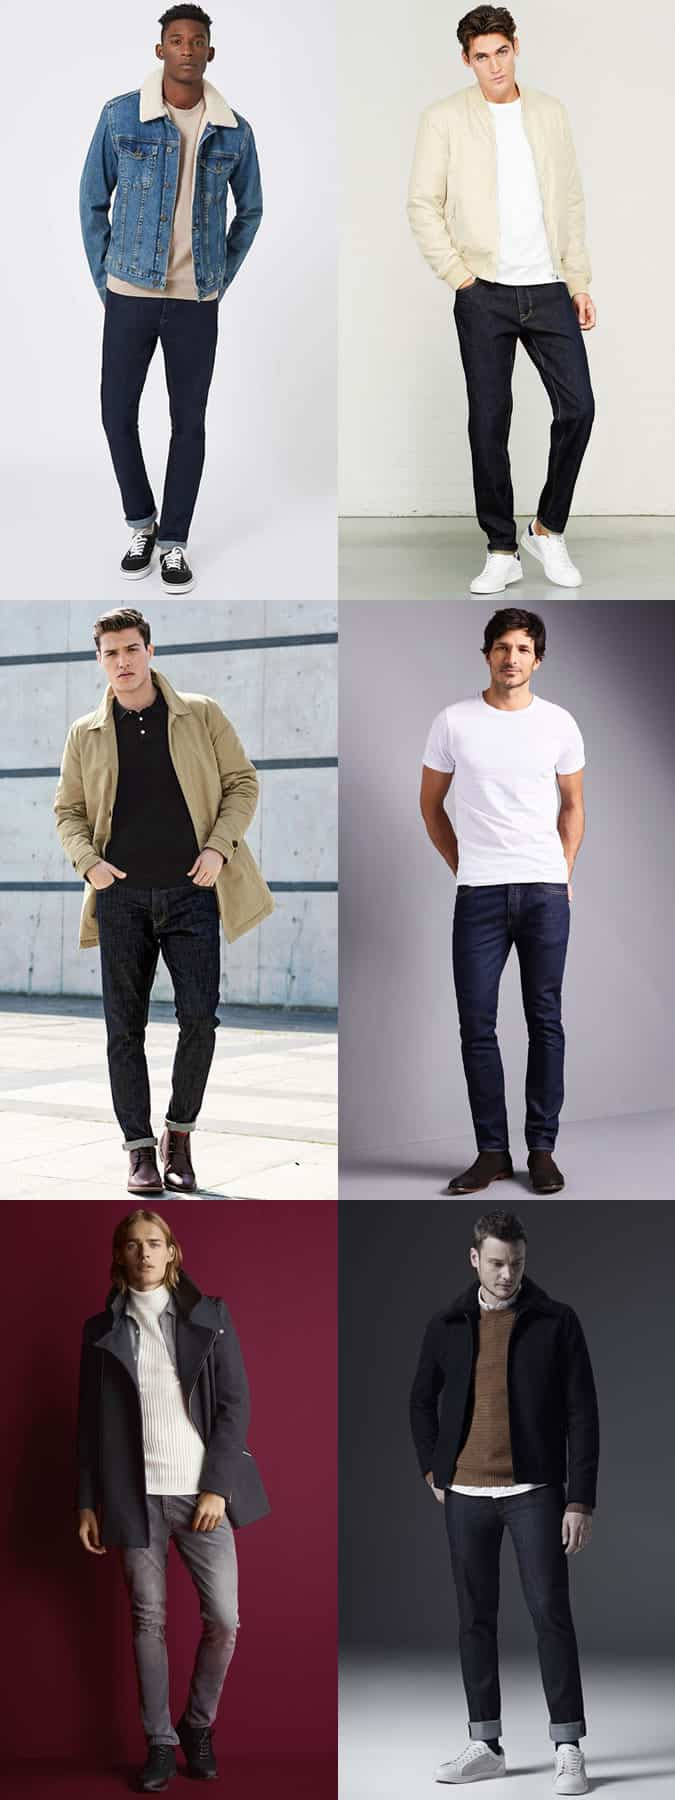 Men's Dark Wash Jeans Outfit Inspiration Lookbook